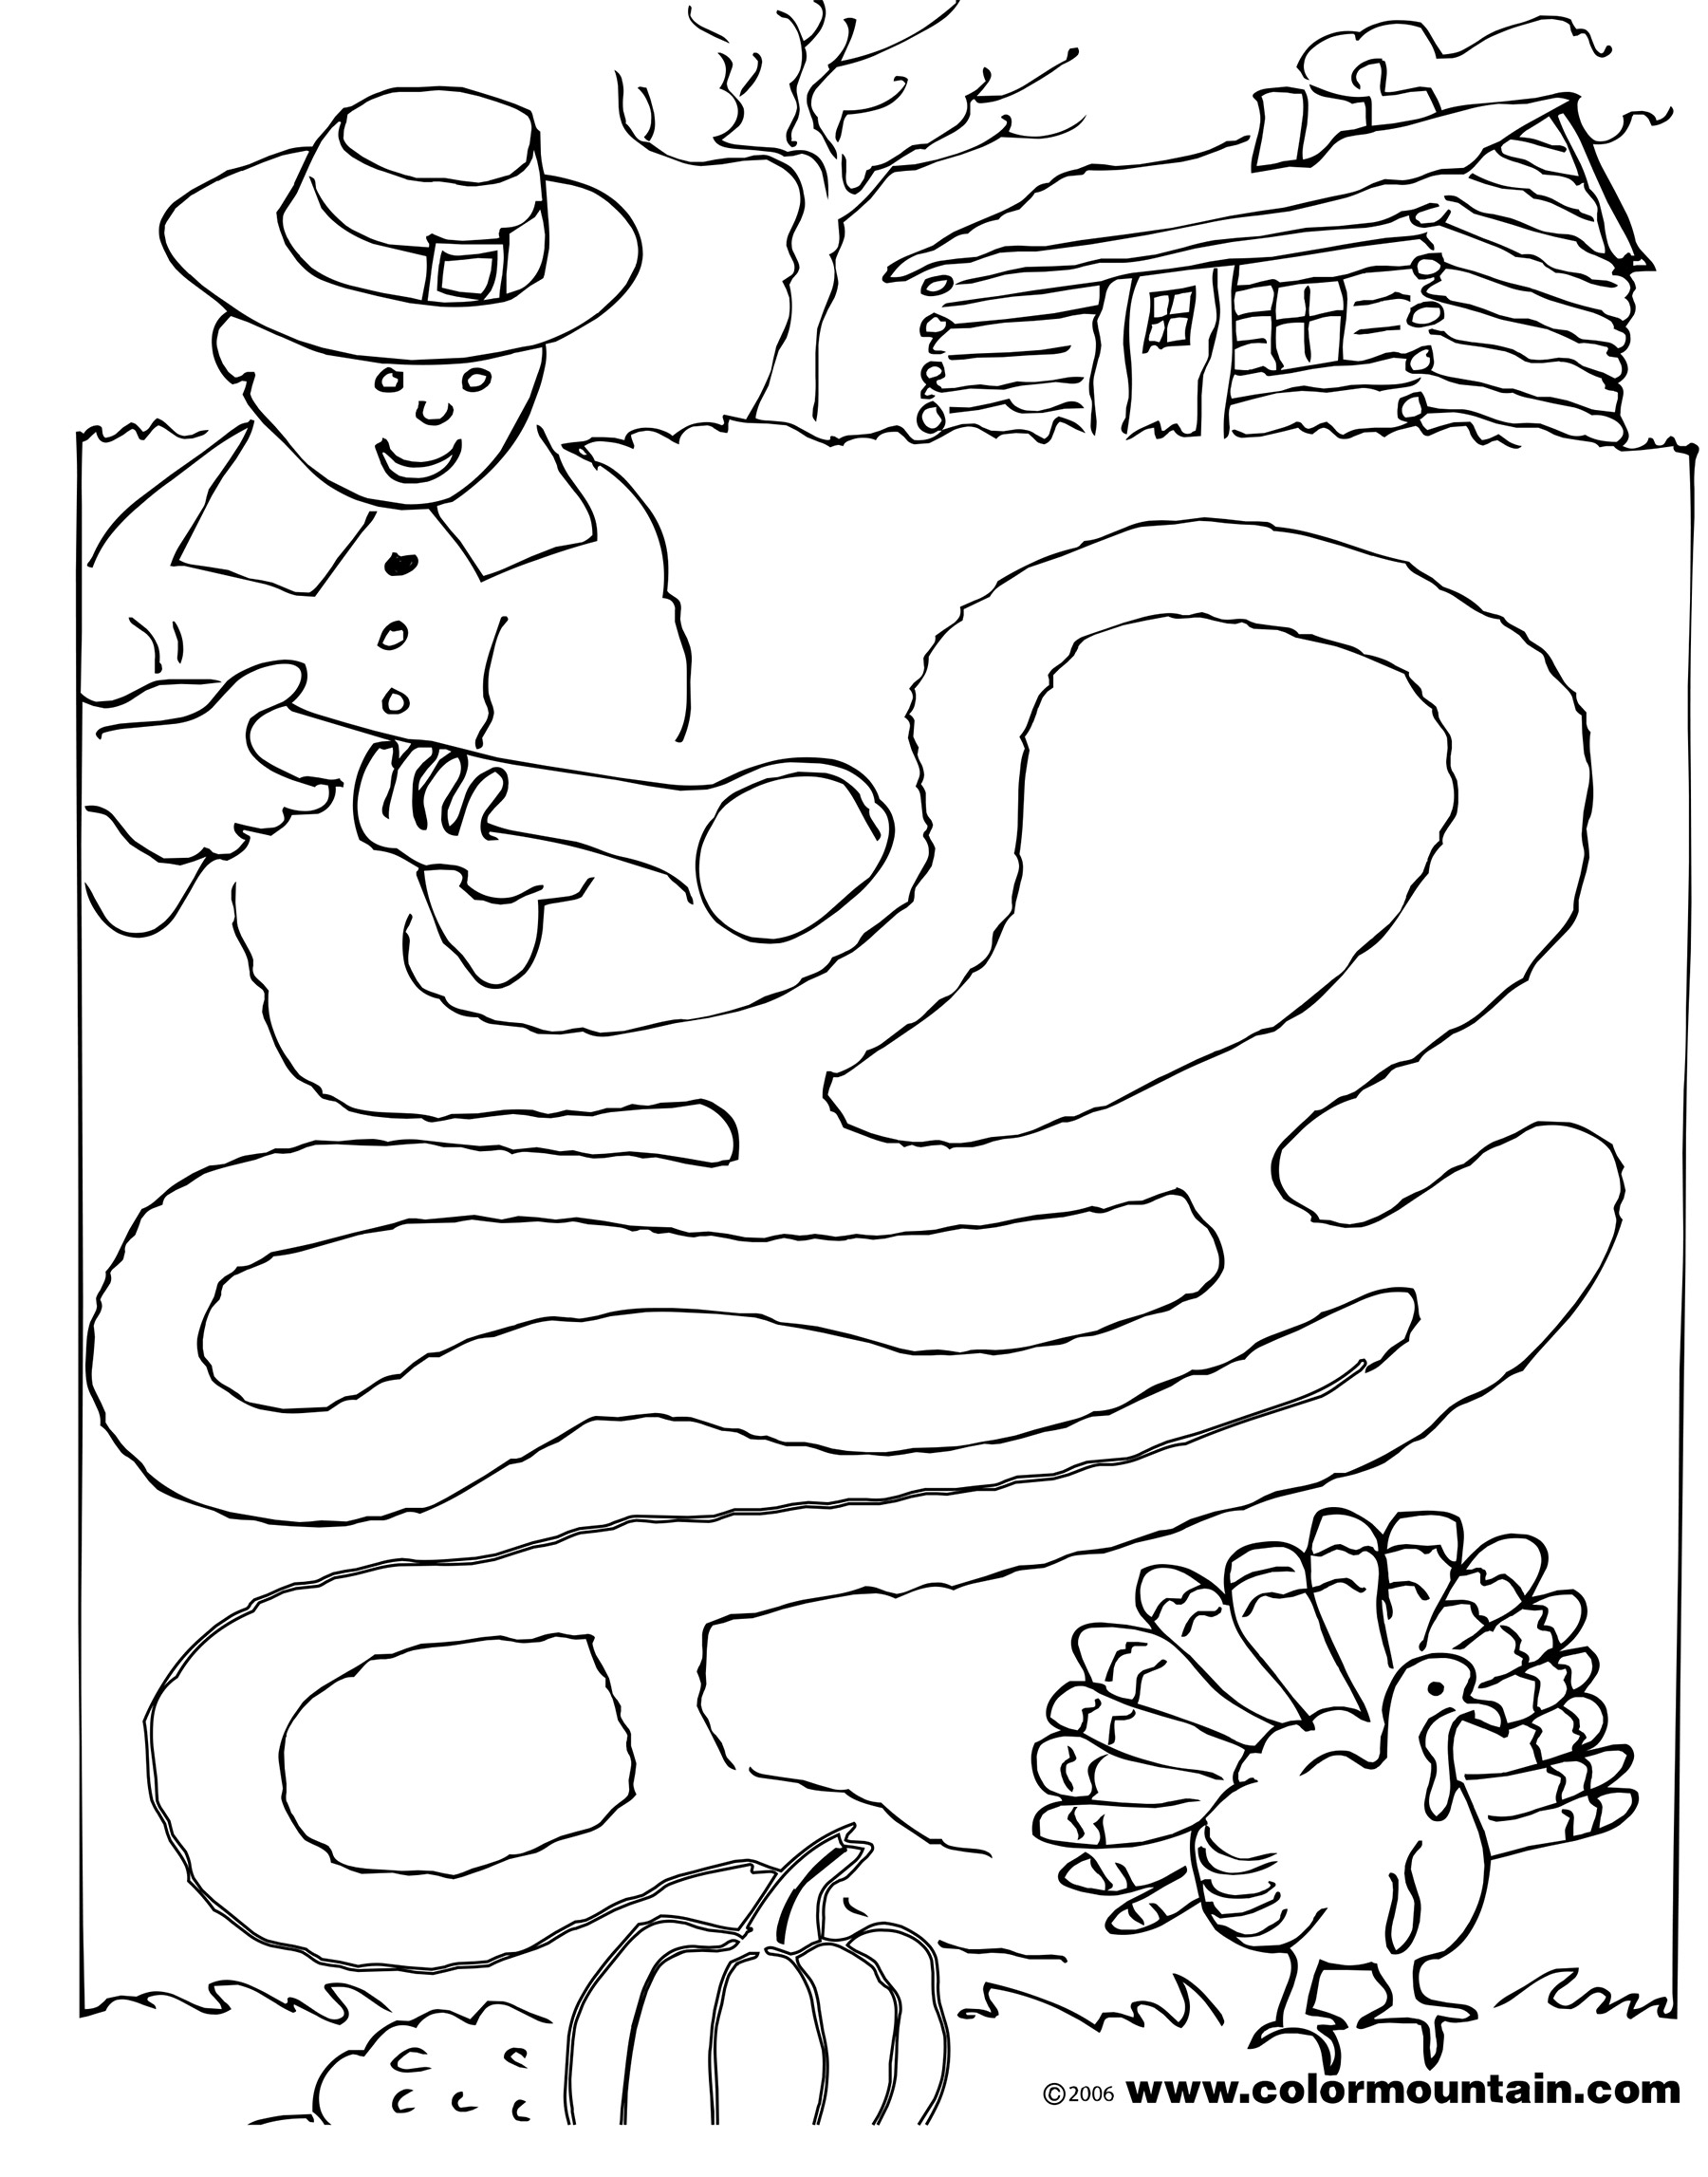 Coloring Pages And Mazes At Getdrawings